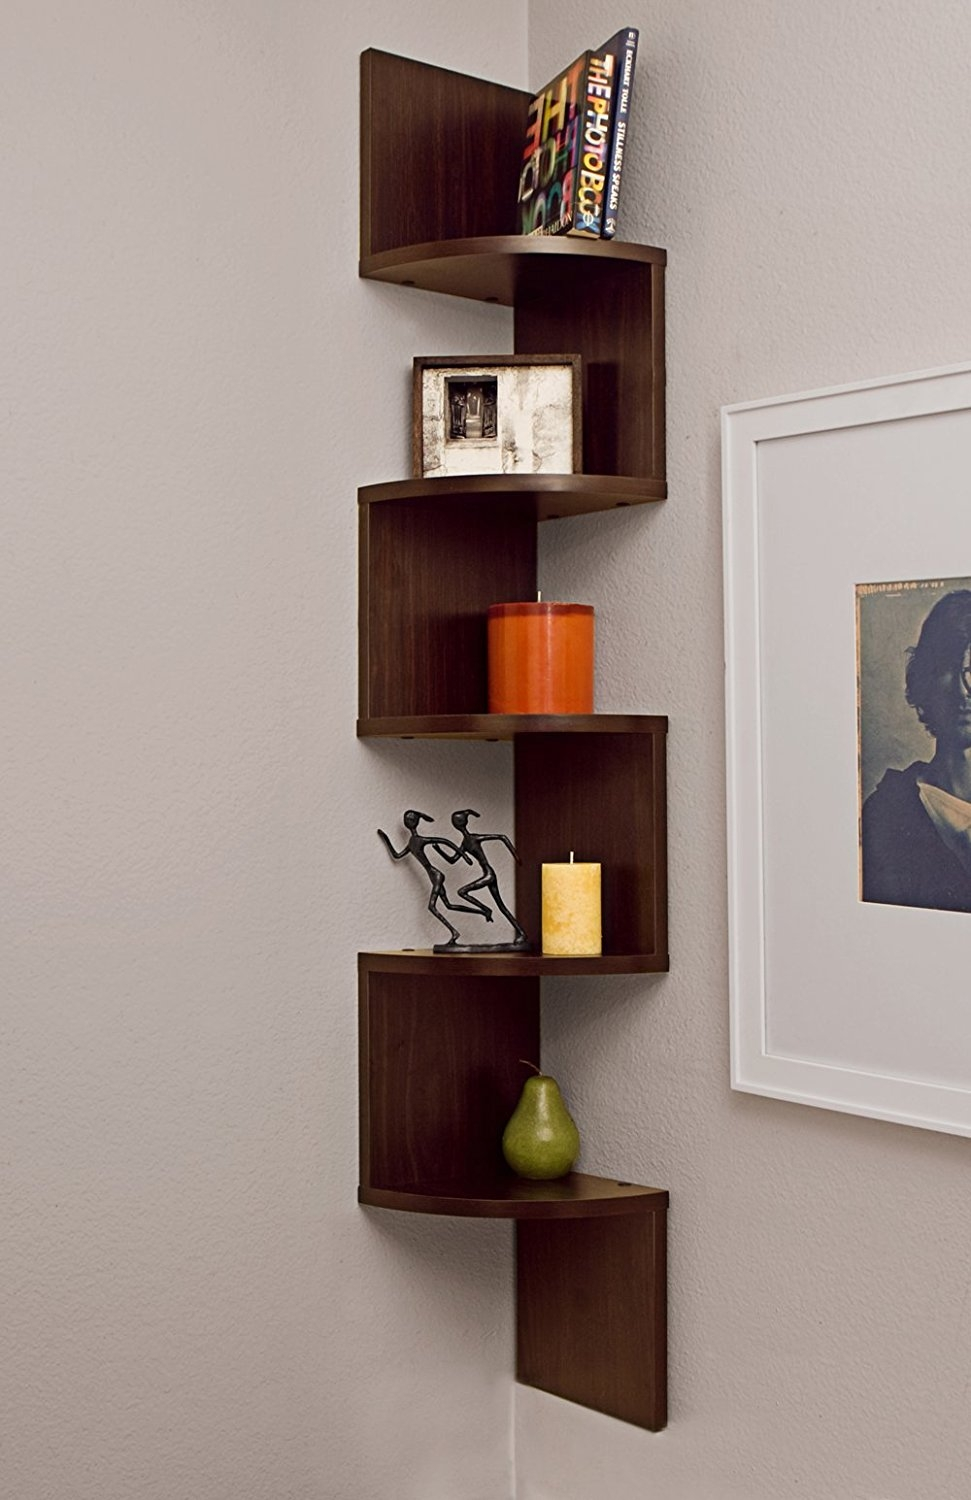 Wall Mounted Shelf Inside Corner Shelf For Dvd Player (Image 14 of 15)